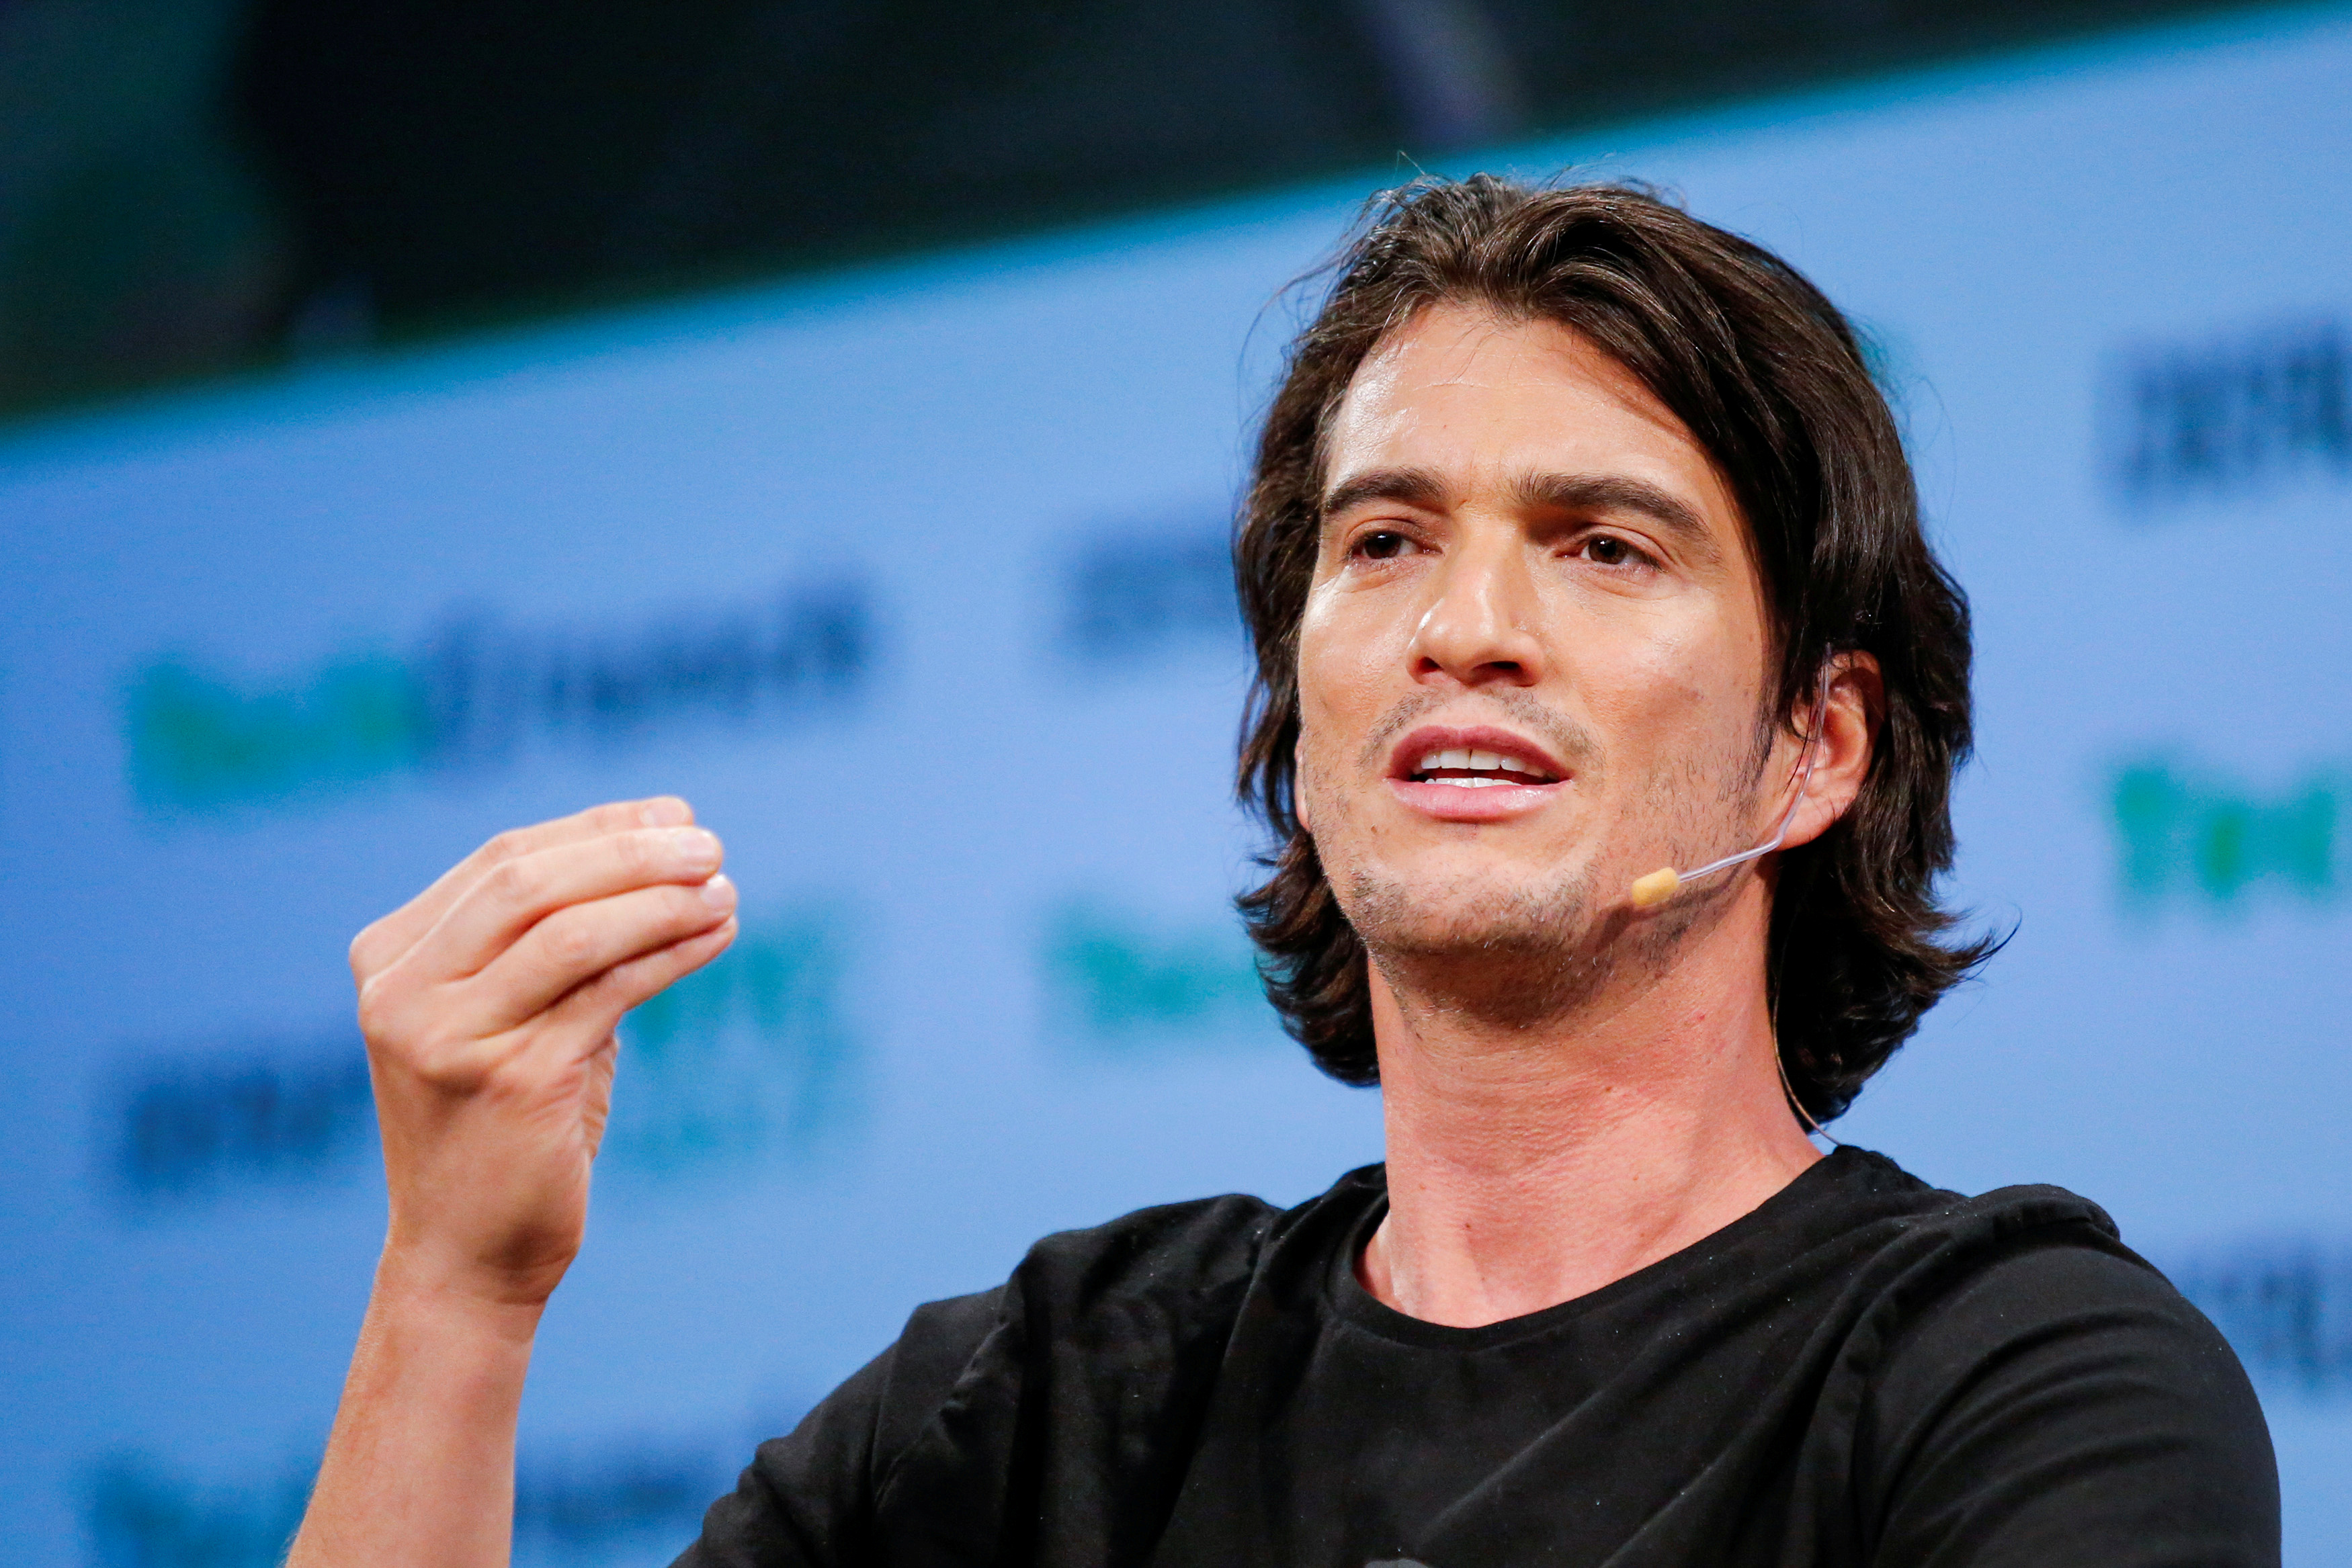 Exclusive: We Company CEO Neumann starts talks on his role at WeWork parent - sources